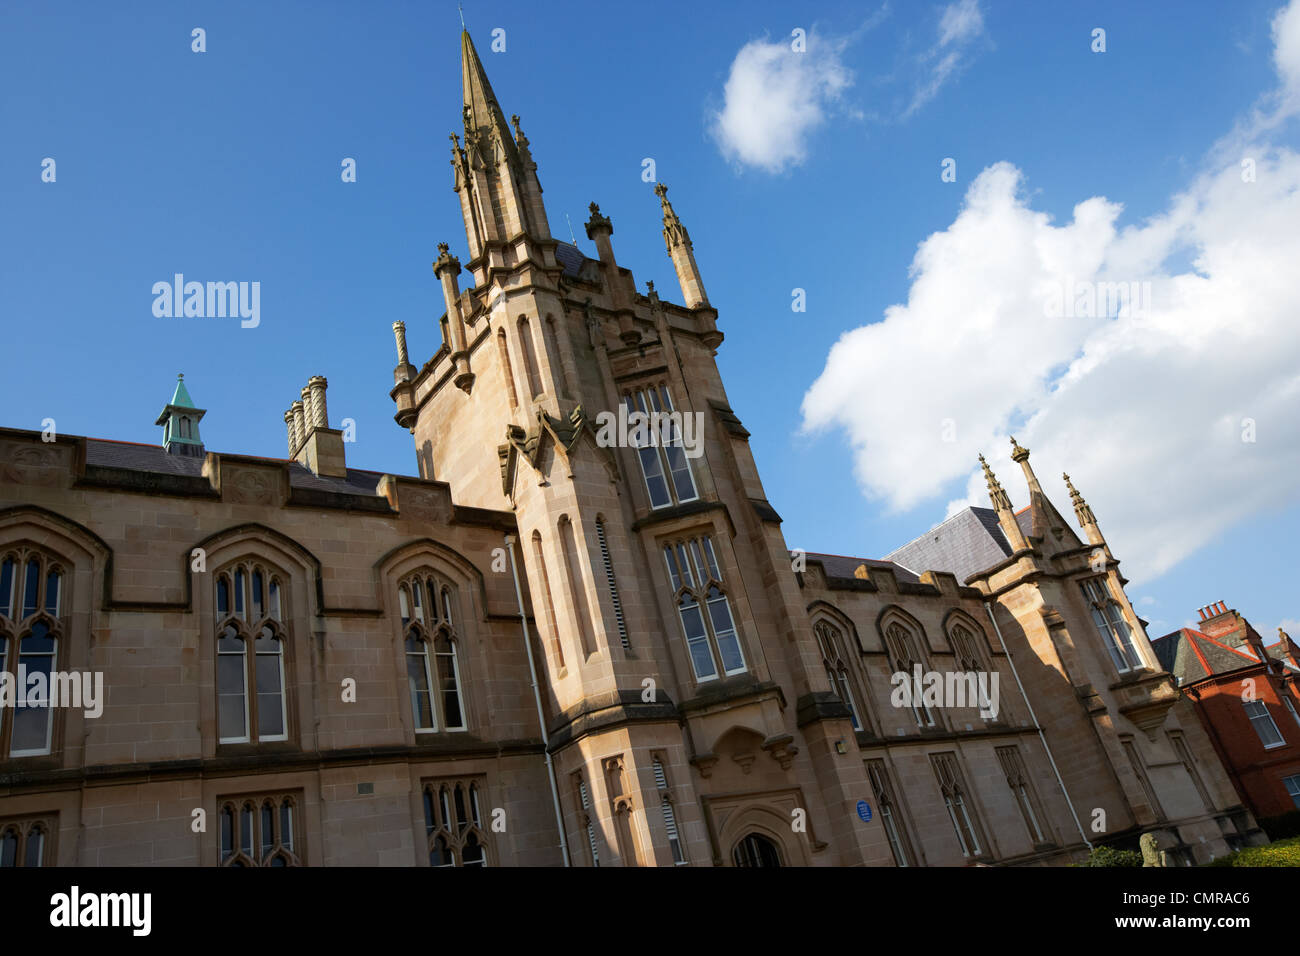 University of Ulster magee college building in Derry city county londonderry northern ireland uk. - Stock Image